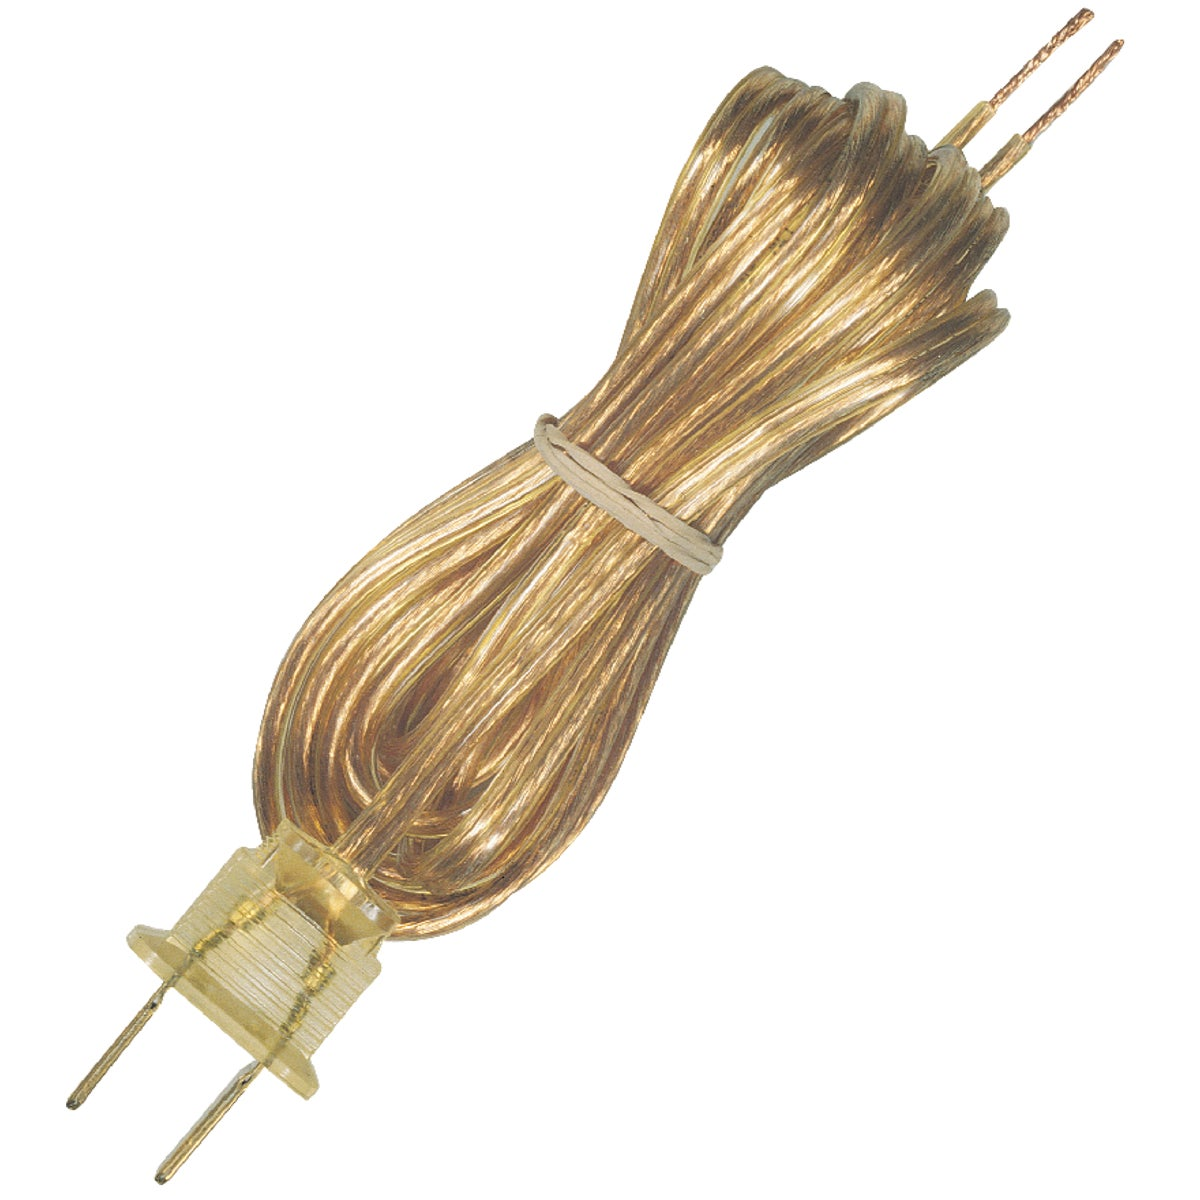 8' GOLD LAMP CORD - 70105 by Westinghouse Lightng